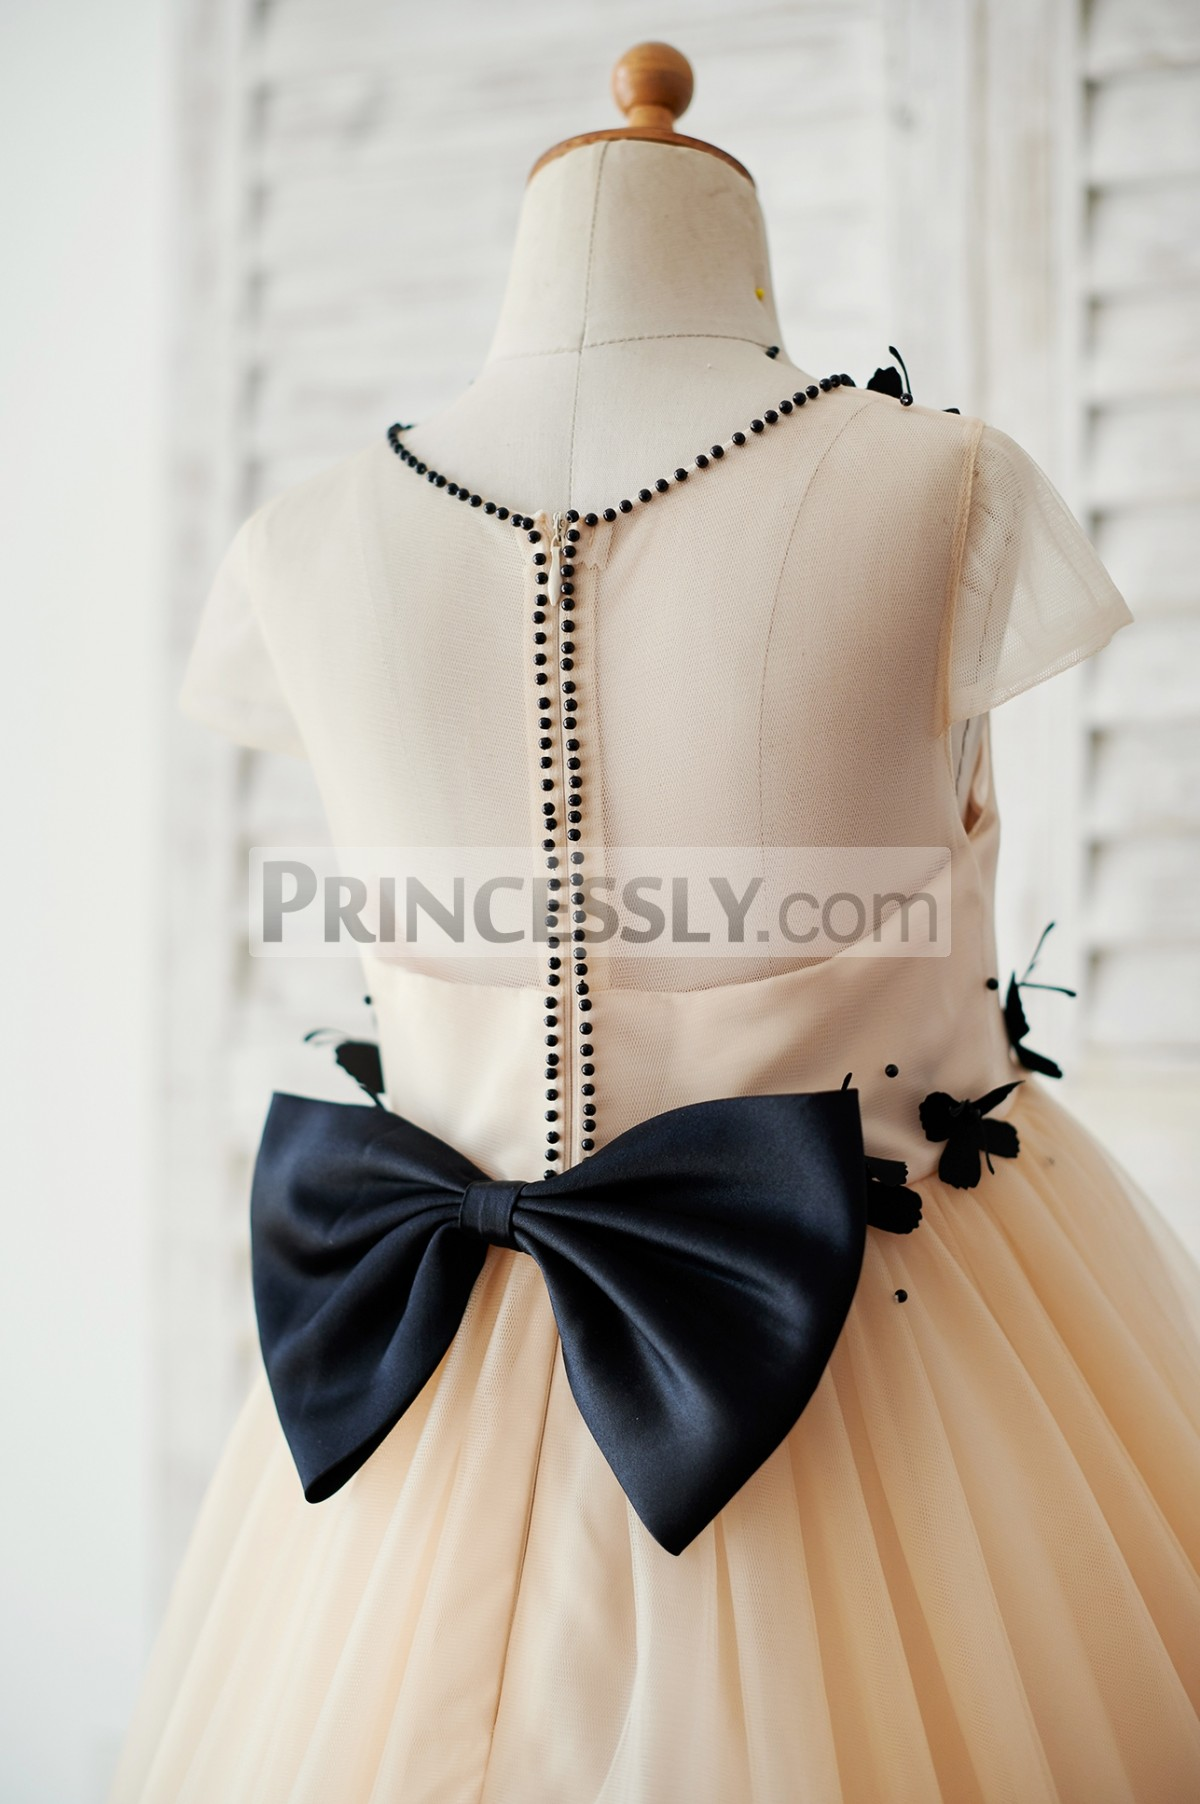 Sheer back with a bow & black beads along hidden zipper